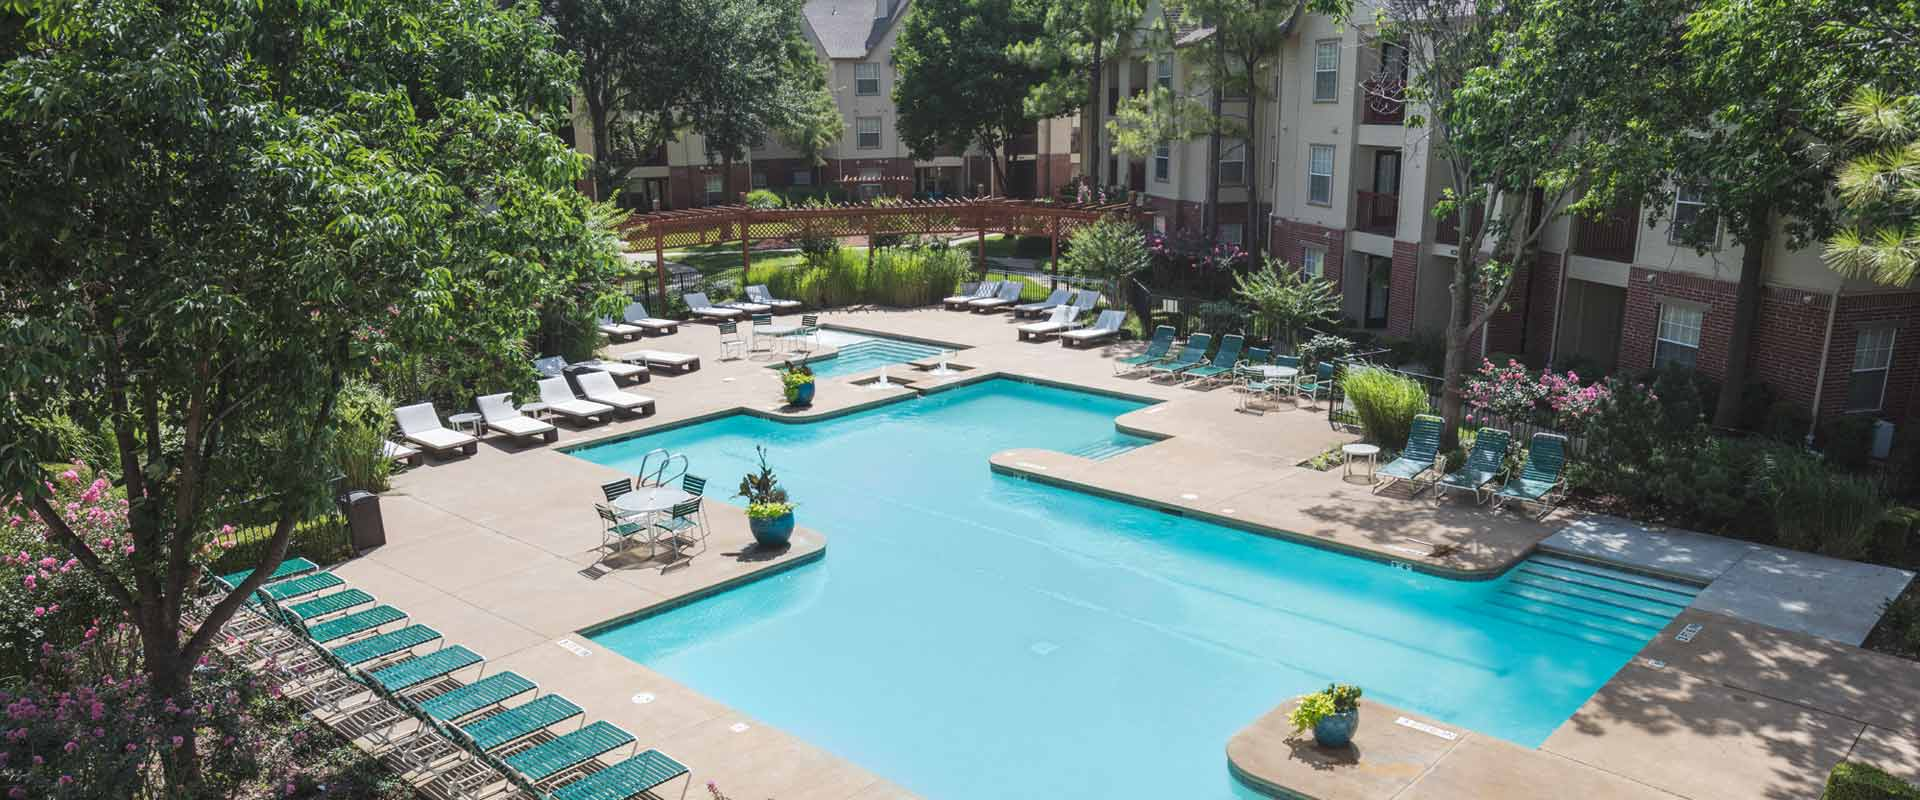 An aerial view of the Swimming Pool and sun deck at Crown Chase Apartments in Tulsa Oklahoma. There are flower shrubs and potted plants, a misting system and many lounge chairs.